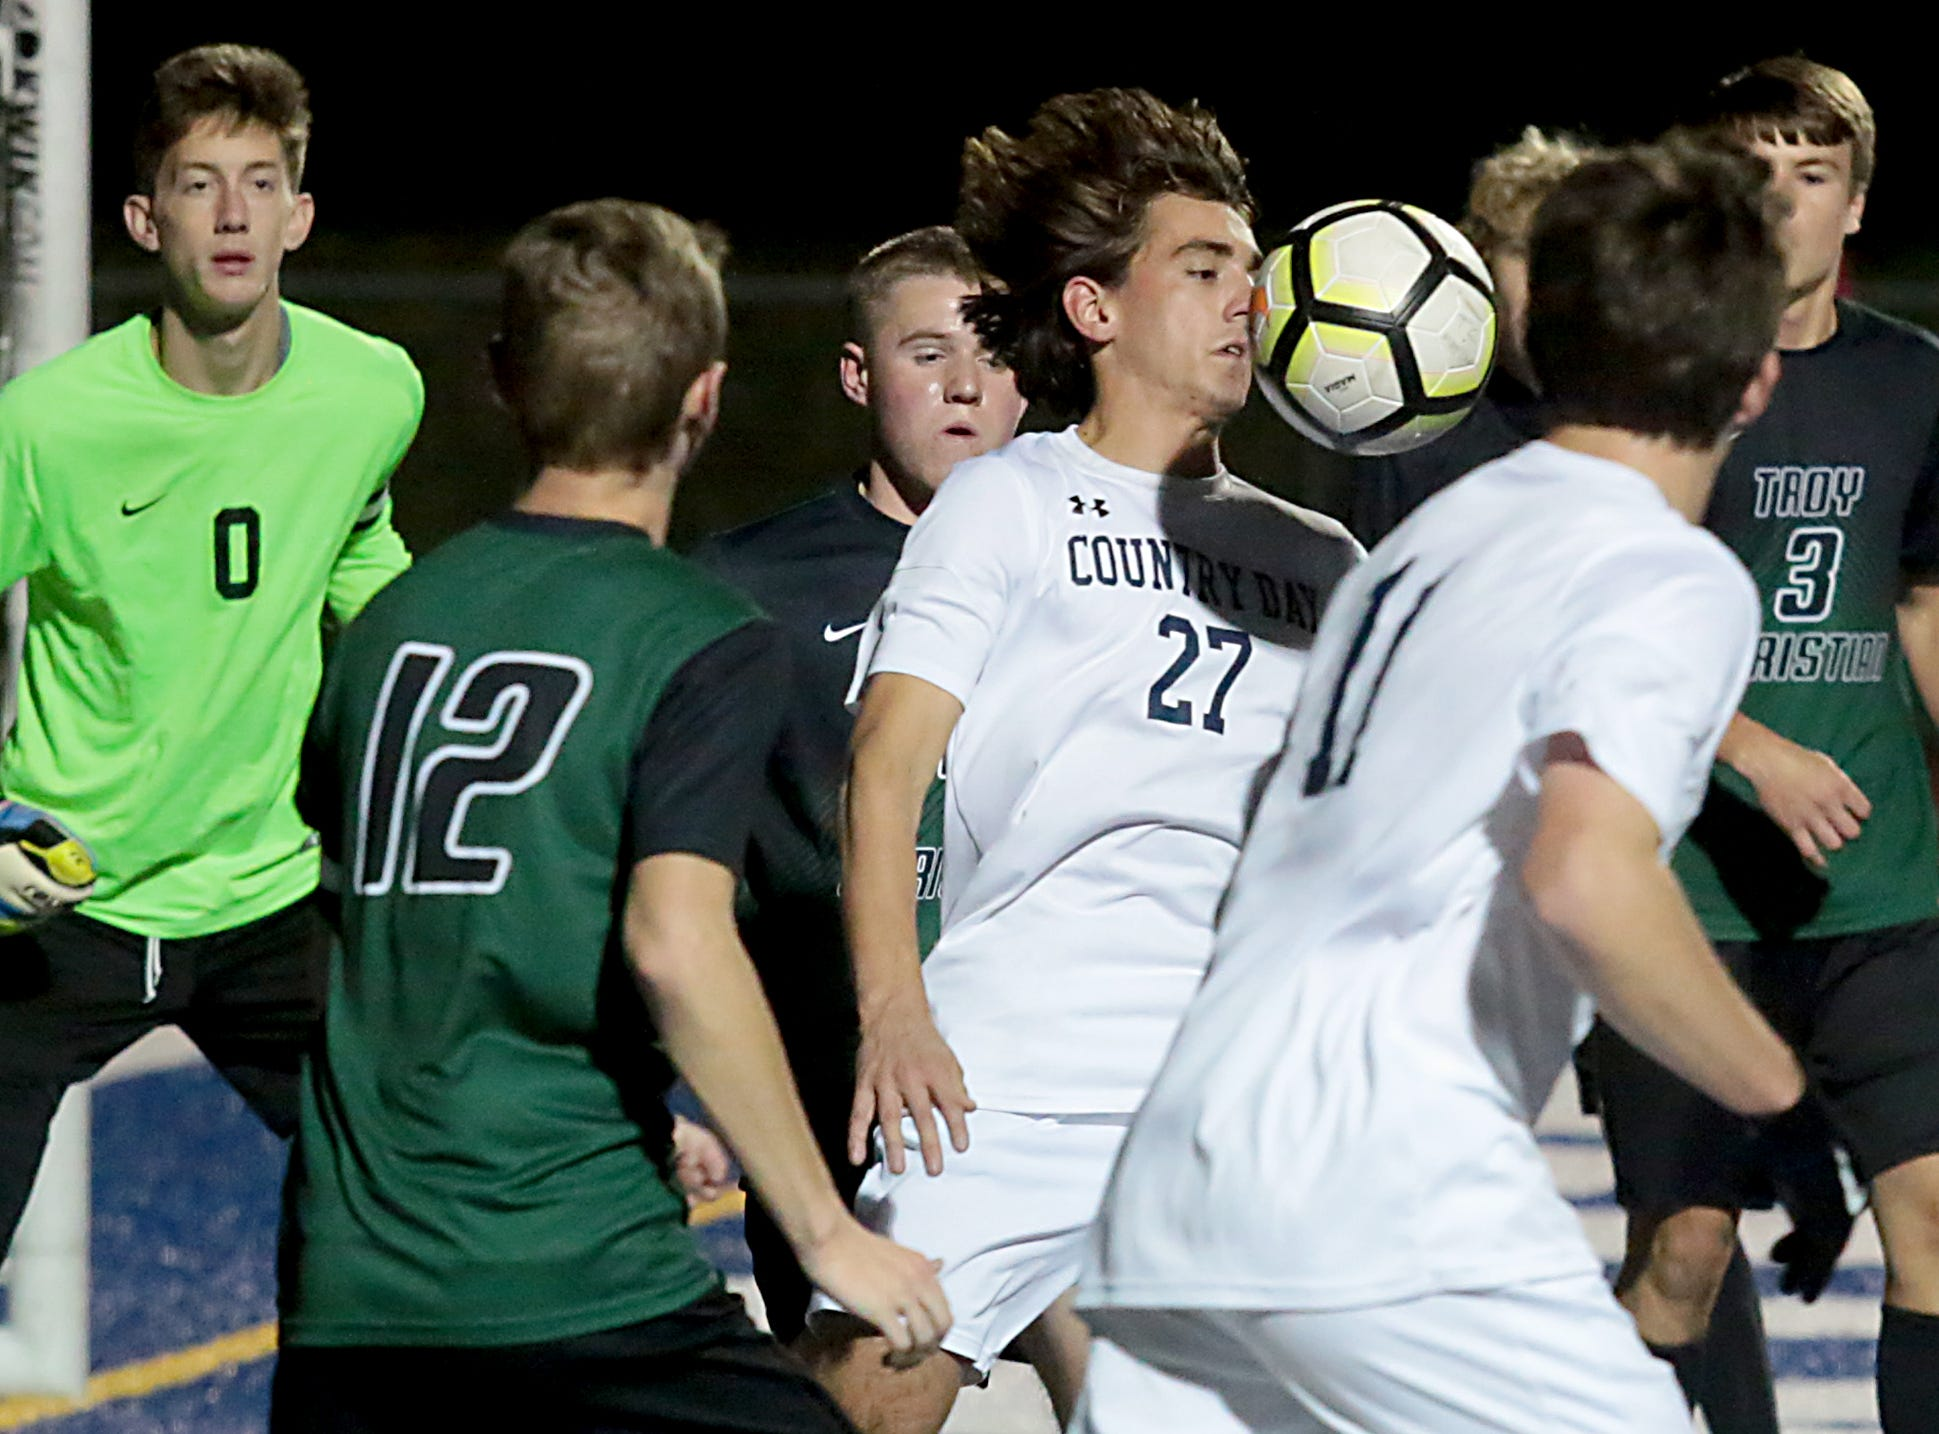 CCD midfielder Cader Rowe tries to score against Troy Christian during their Division III district final soccer match at Wyoming Thursday, Oct. 25, 2018.